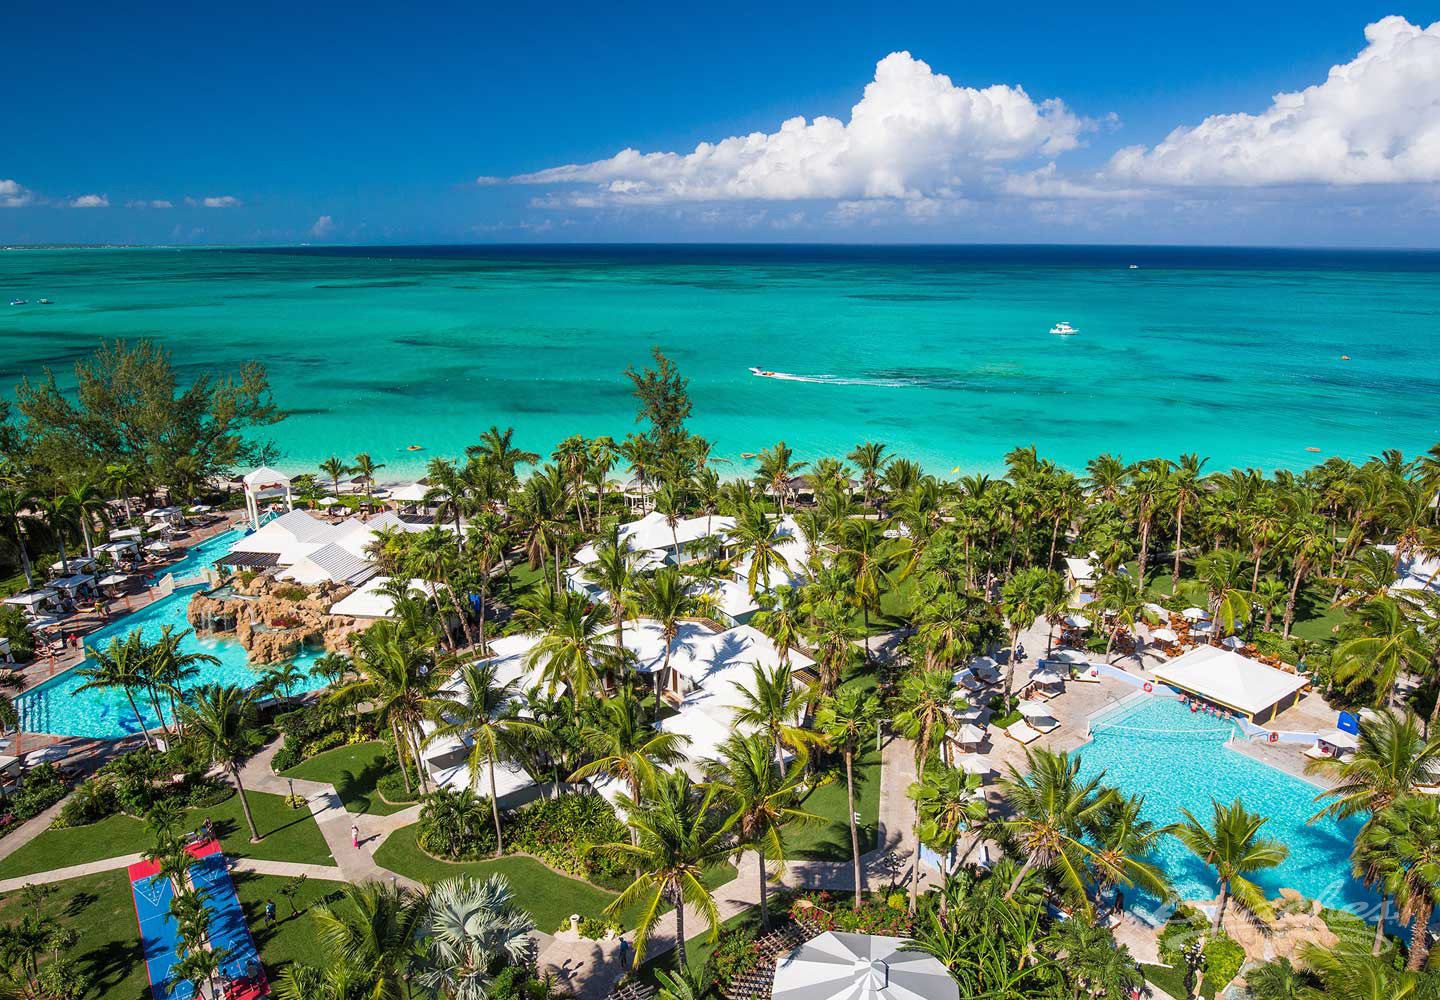 Travel Agency All-Inclusive Resort Beaches Turks and Caicos 155